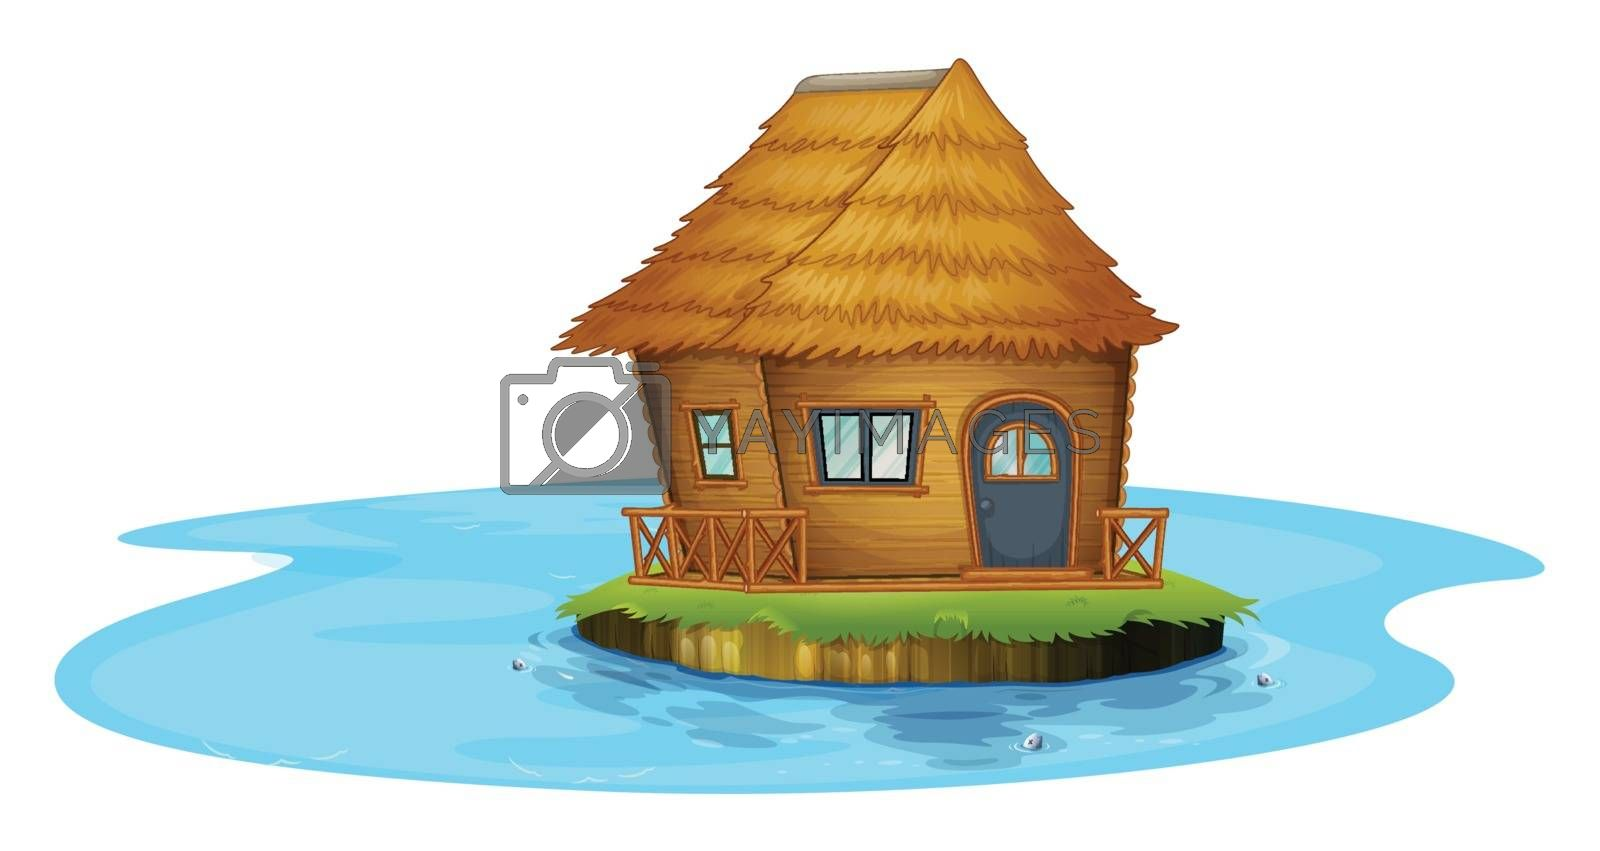 Illustration of an island with a small house on a white background